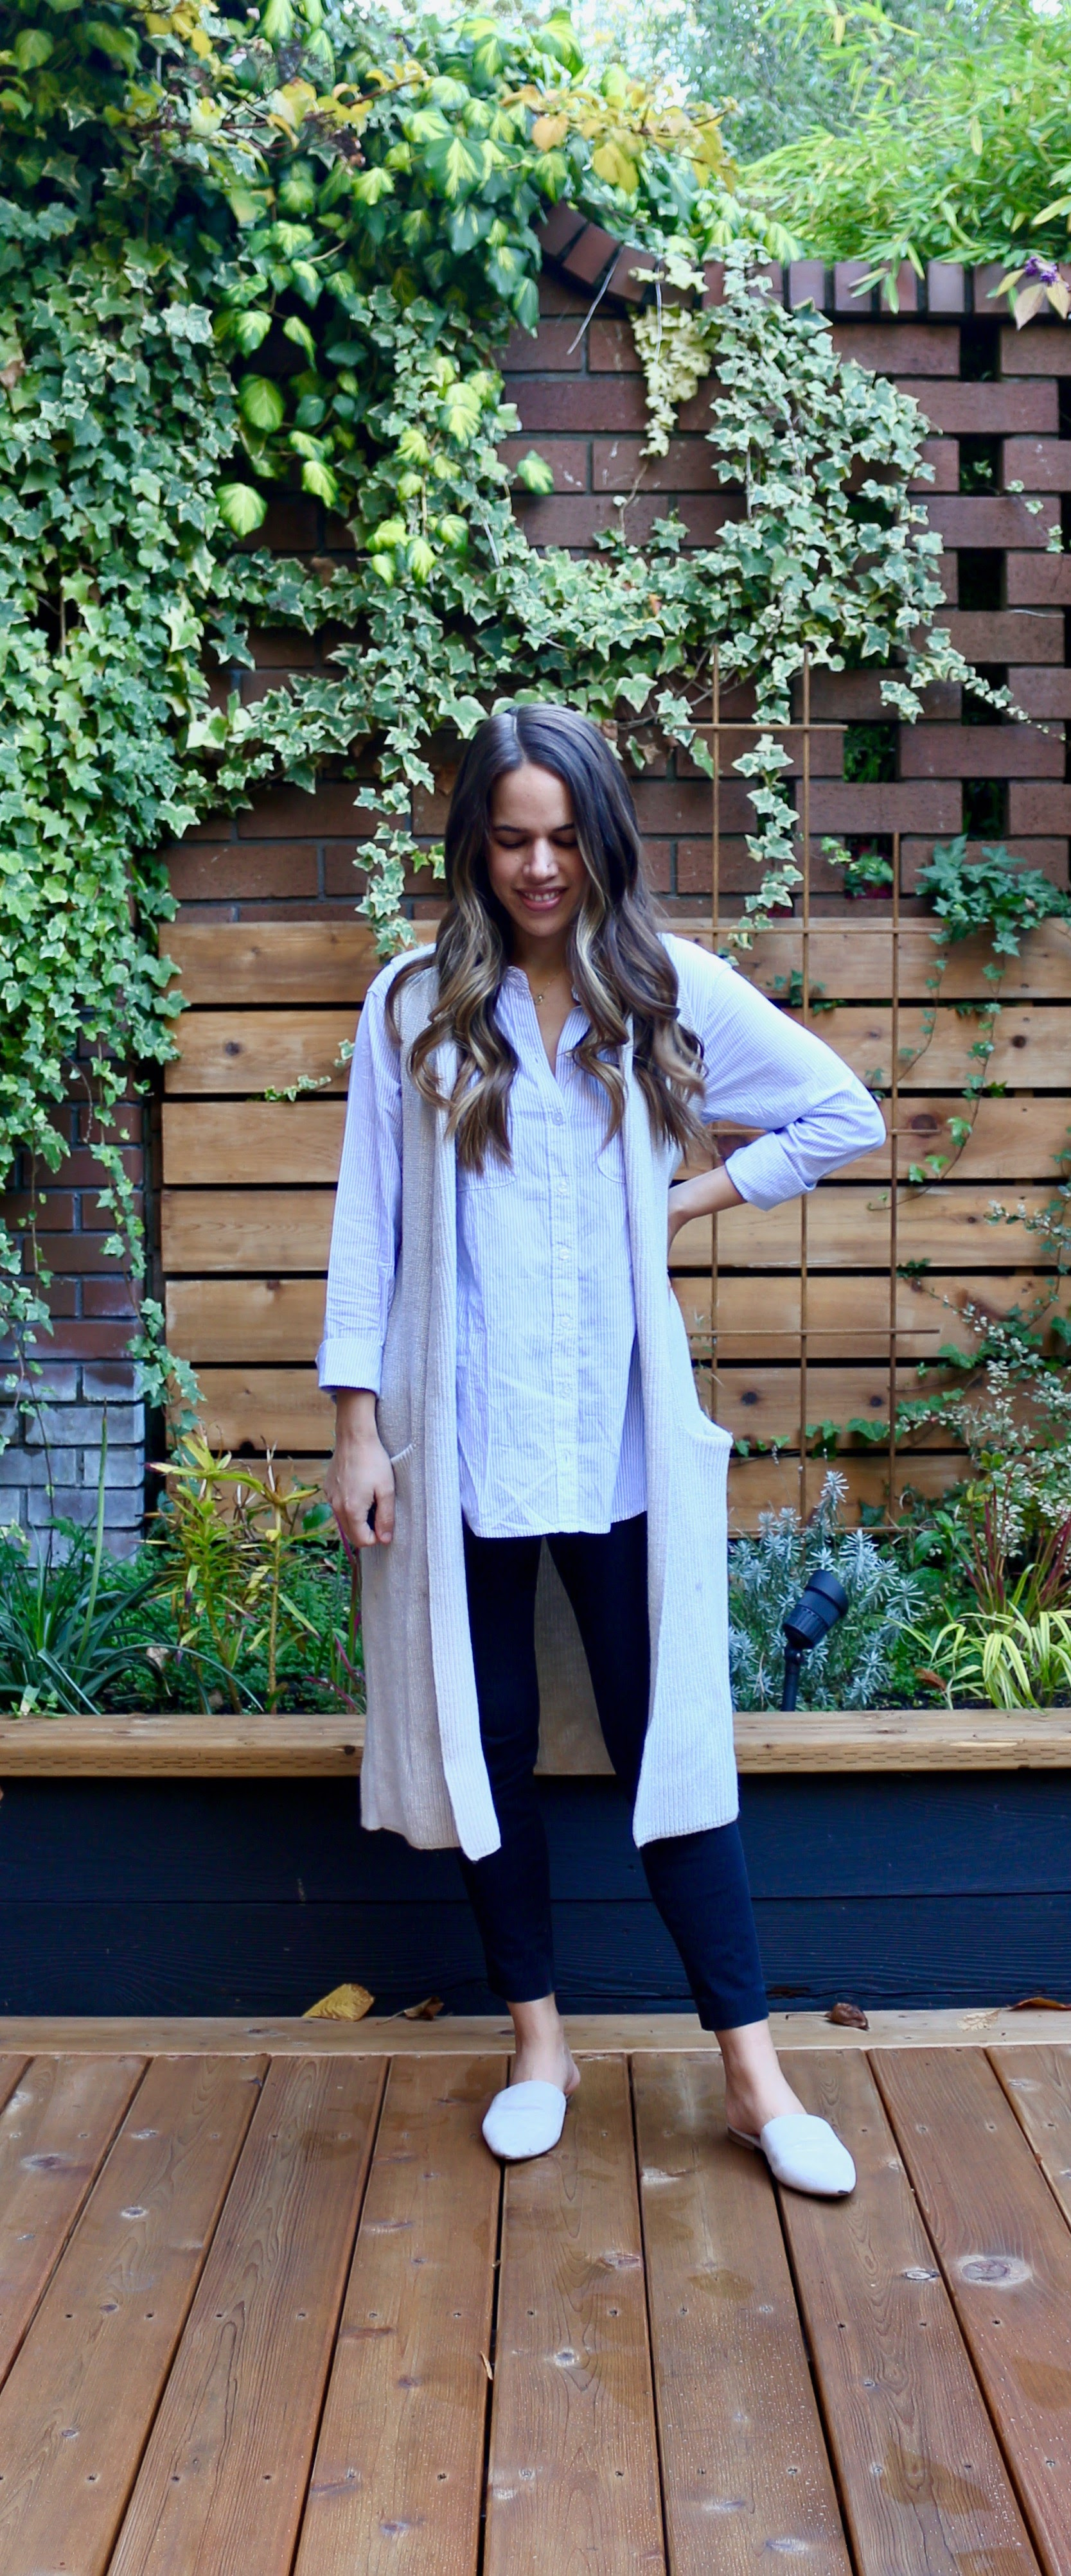 Jules in Flats - Oversized Shirt with Knit Duster Vest (Business Casual Workwear on a Budget)